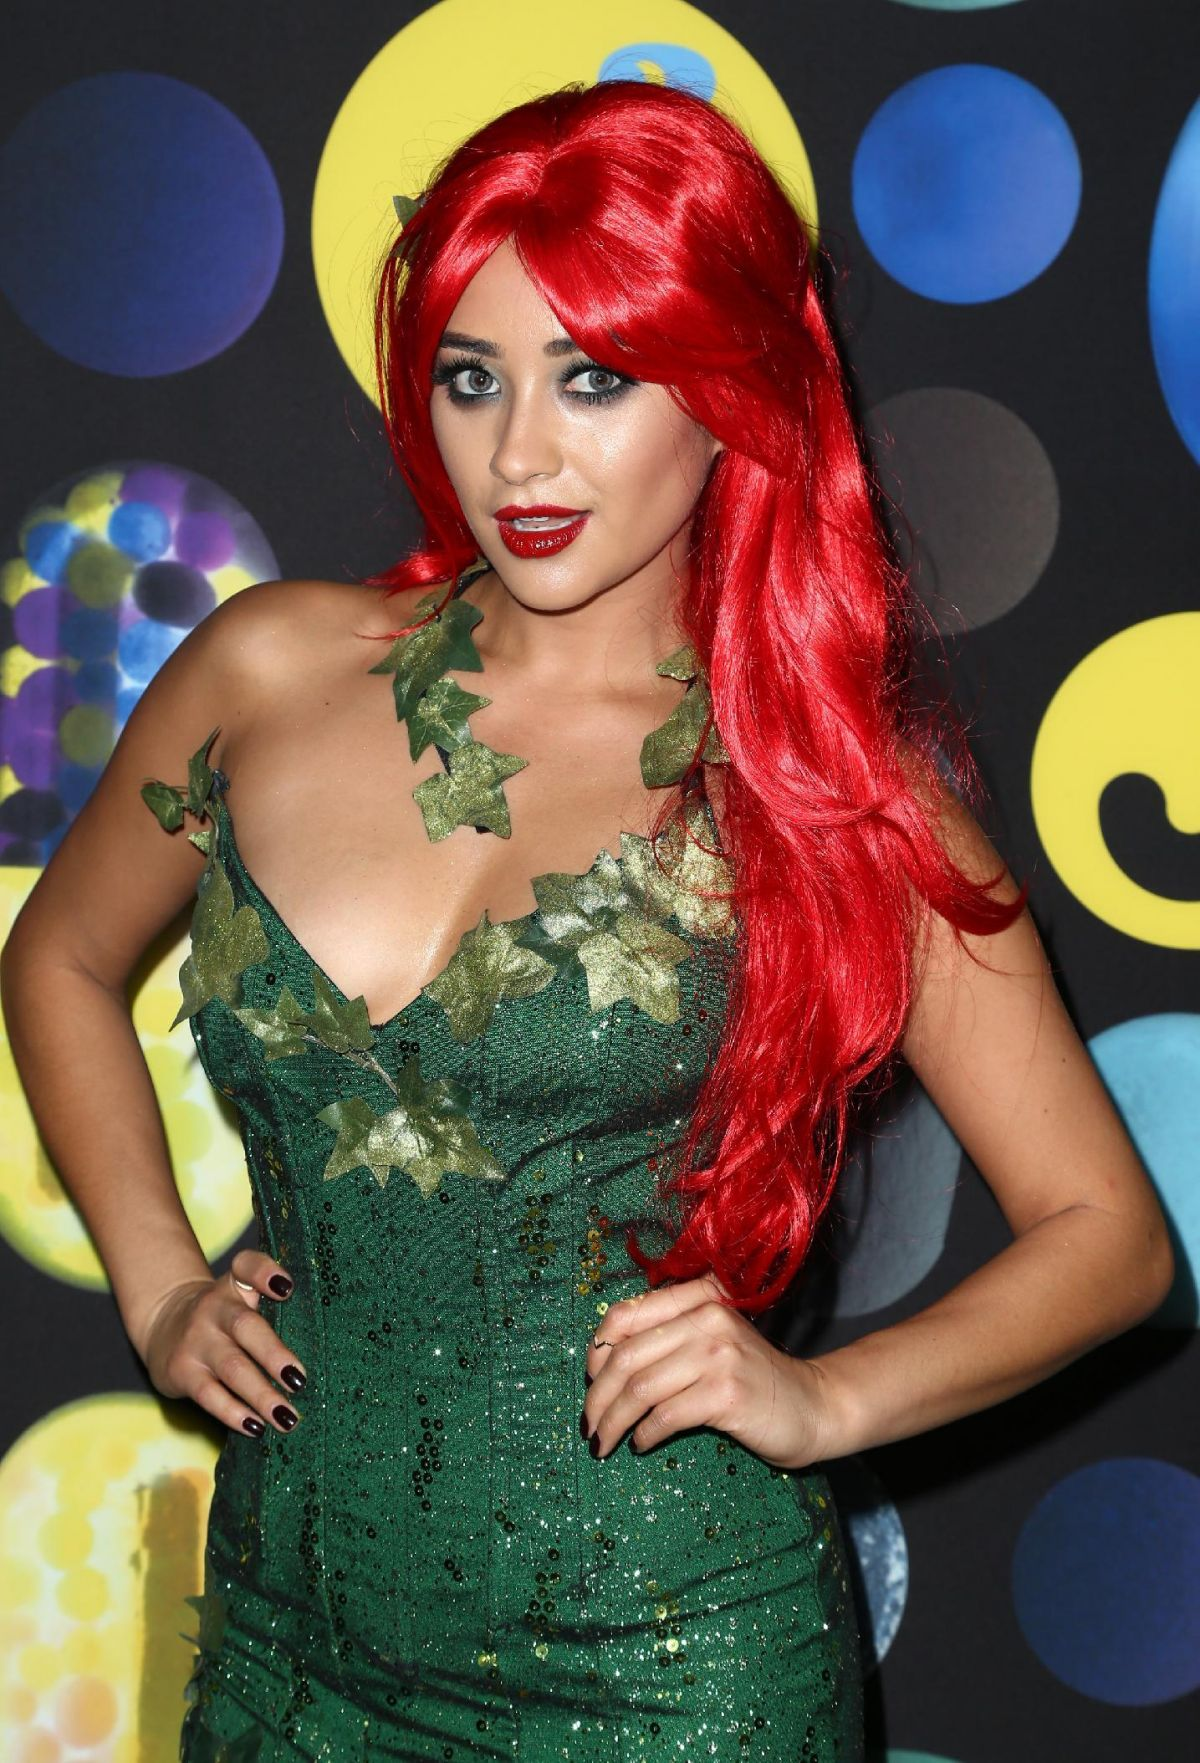 shay mitchell at just jared halloween party in hollywood 10312015 - Halloween Parties In Hollywood